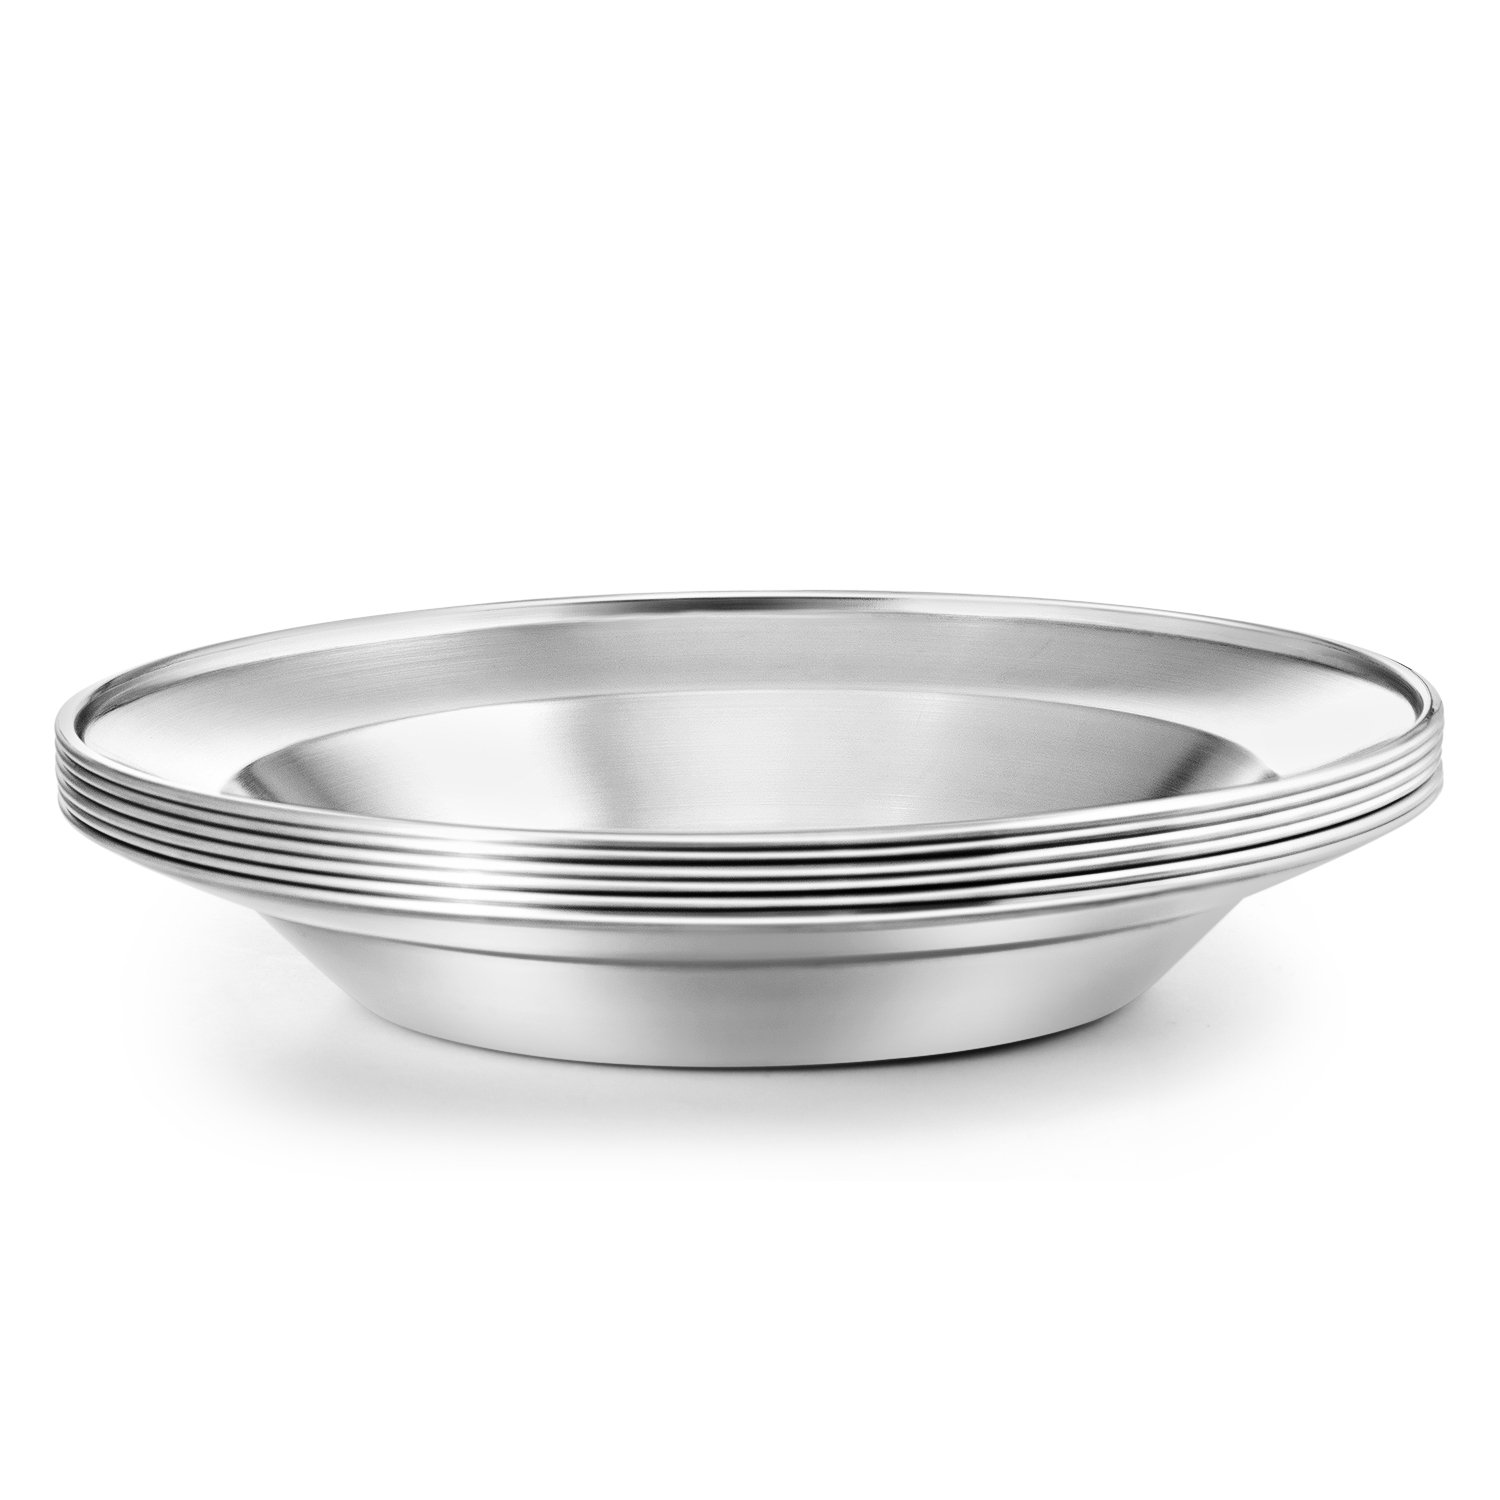 Beach Hiking Stainless Steel Plate Set Picnic 8.5 inch Ultra-Portable Dinnerware Set BPA Free Plates for Outdoor Camping BBQ